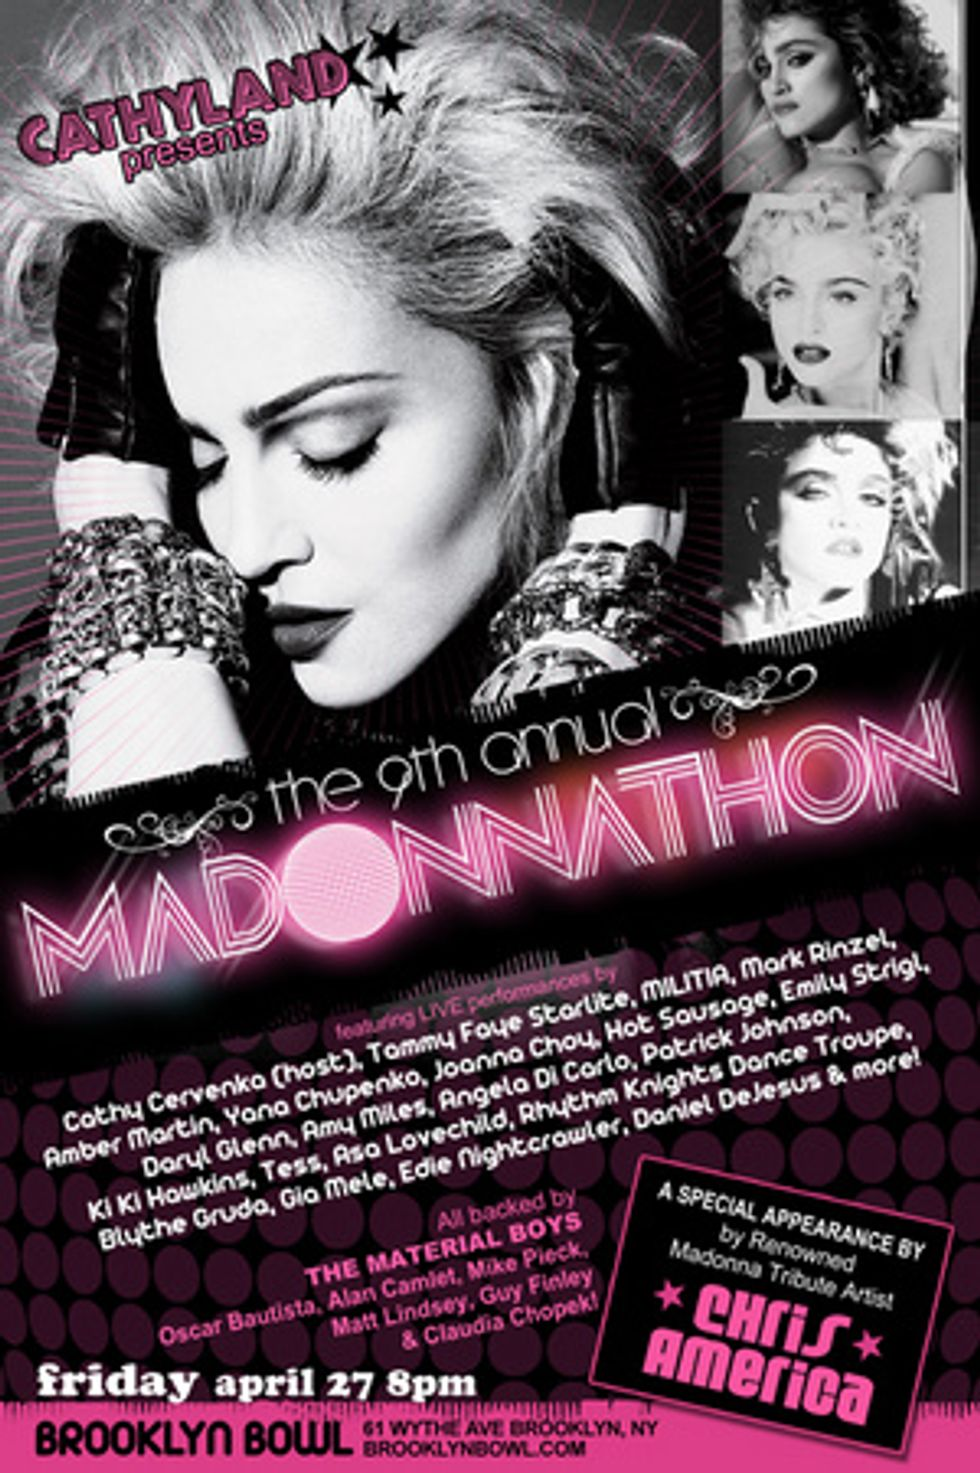 Get Into the Groove at the 9th Annual Madonnathon